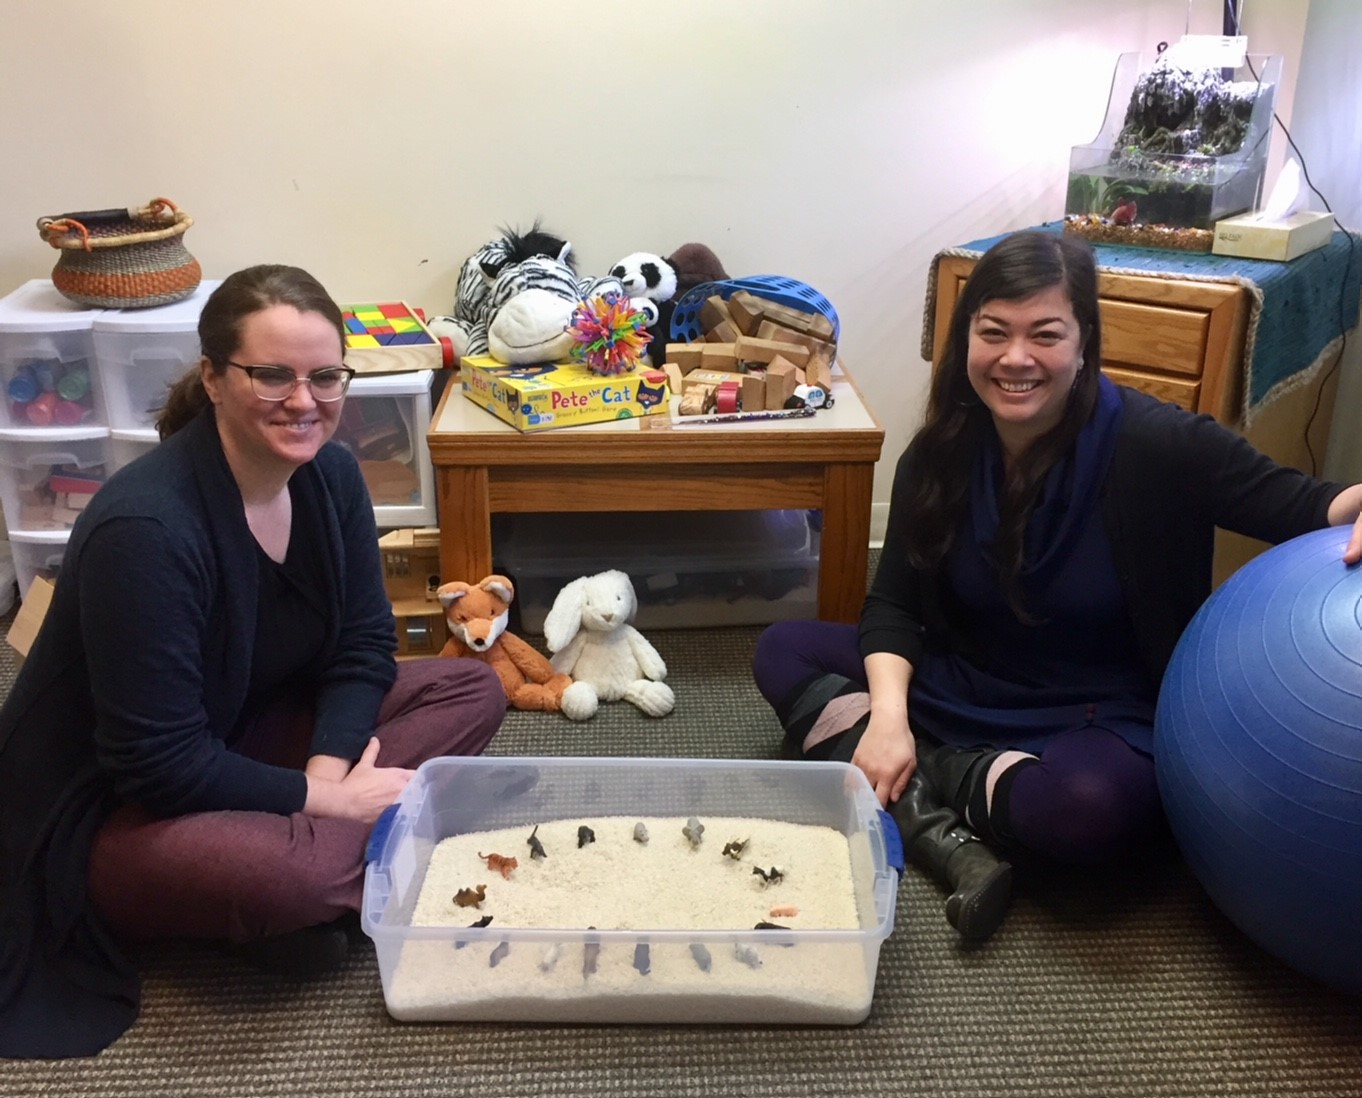 Mental Health Therapists Charissa Schmidt, QMHP and Carlyn Wierda, LMFT pose with therapeutic play tools.